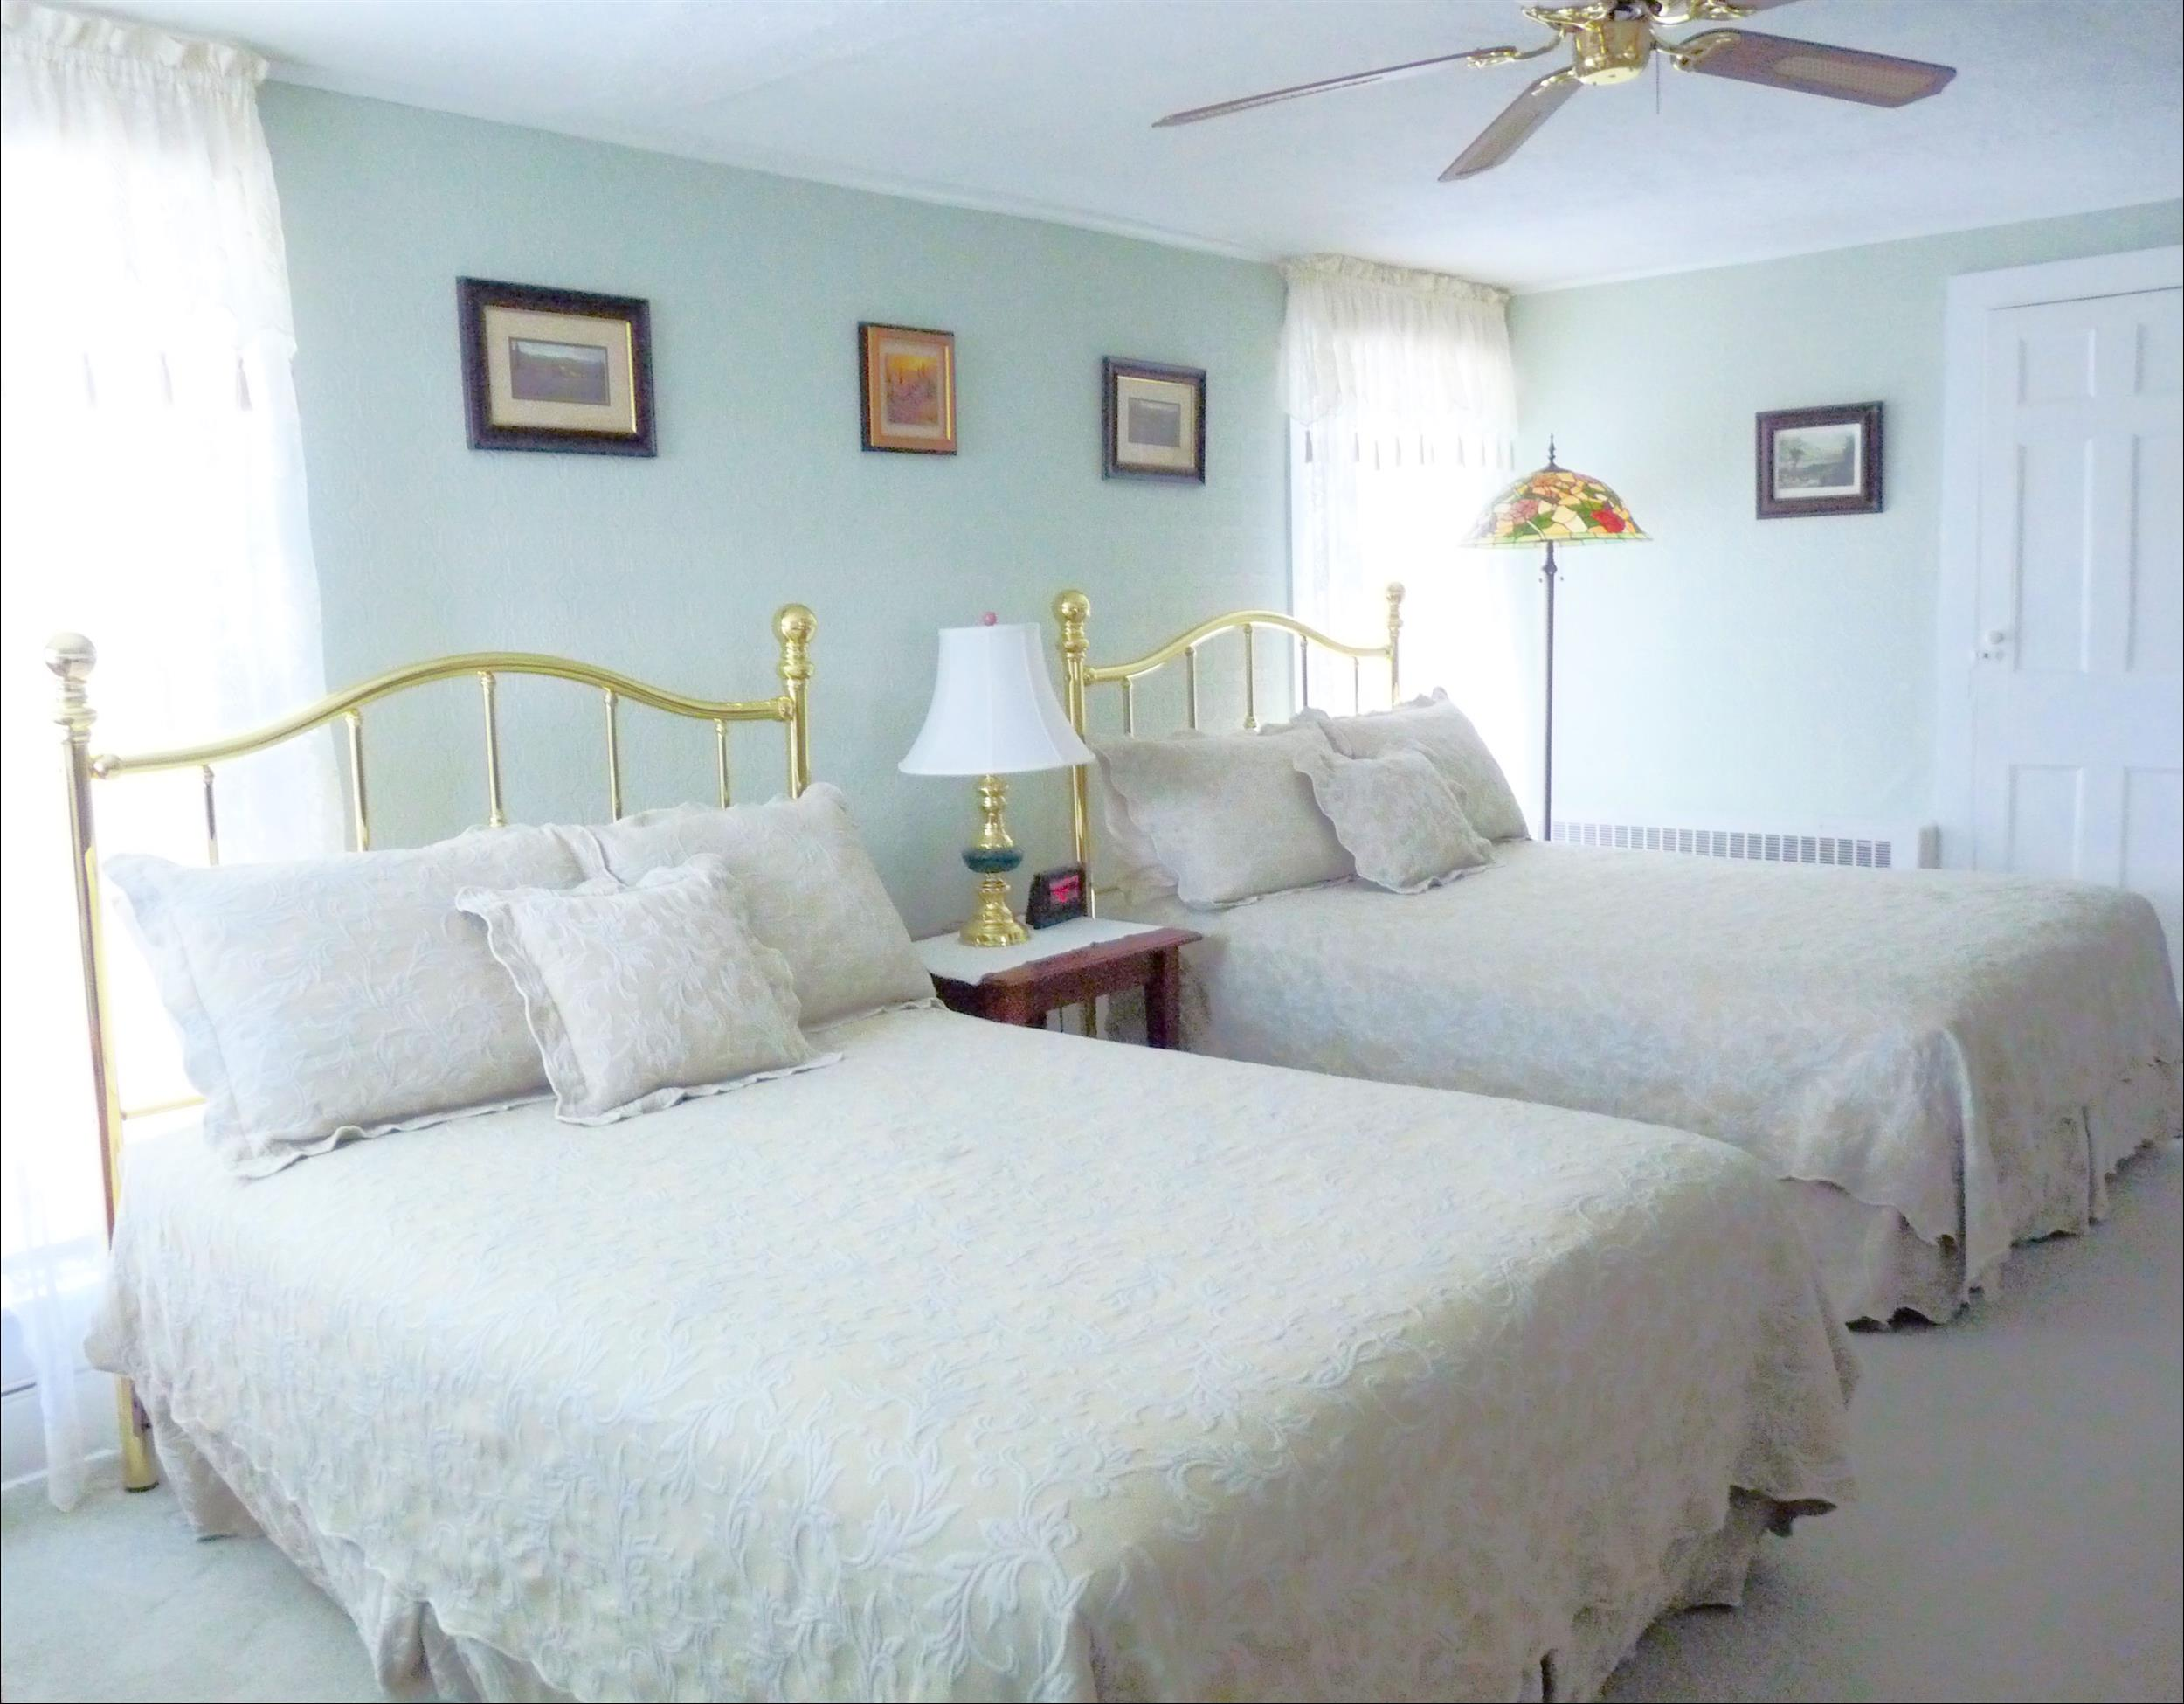 two beds with white bed spreas